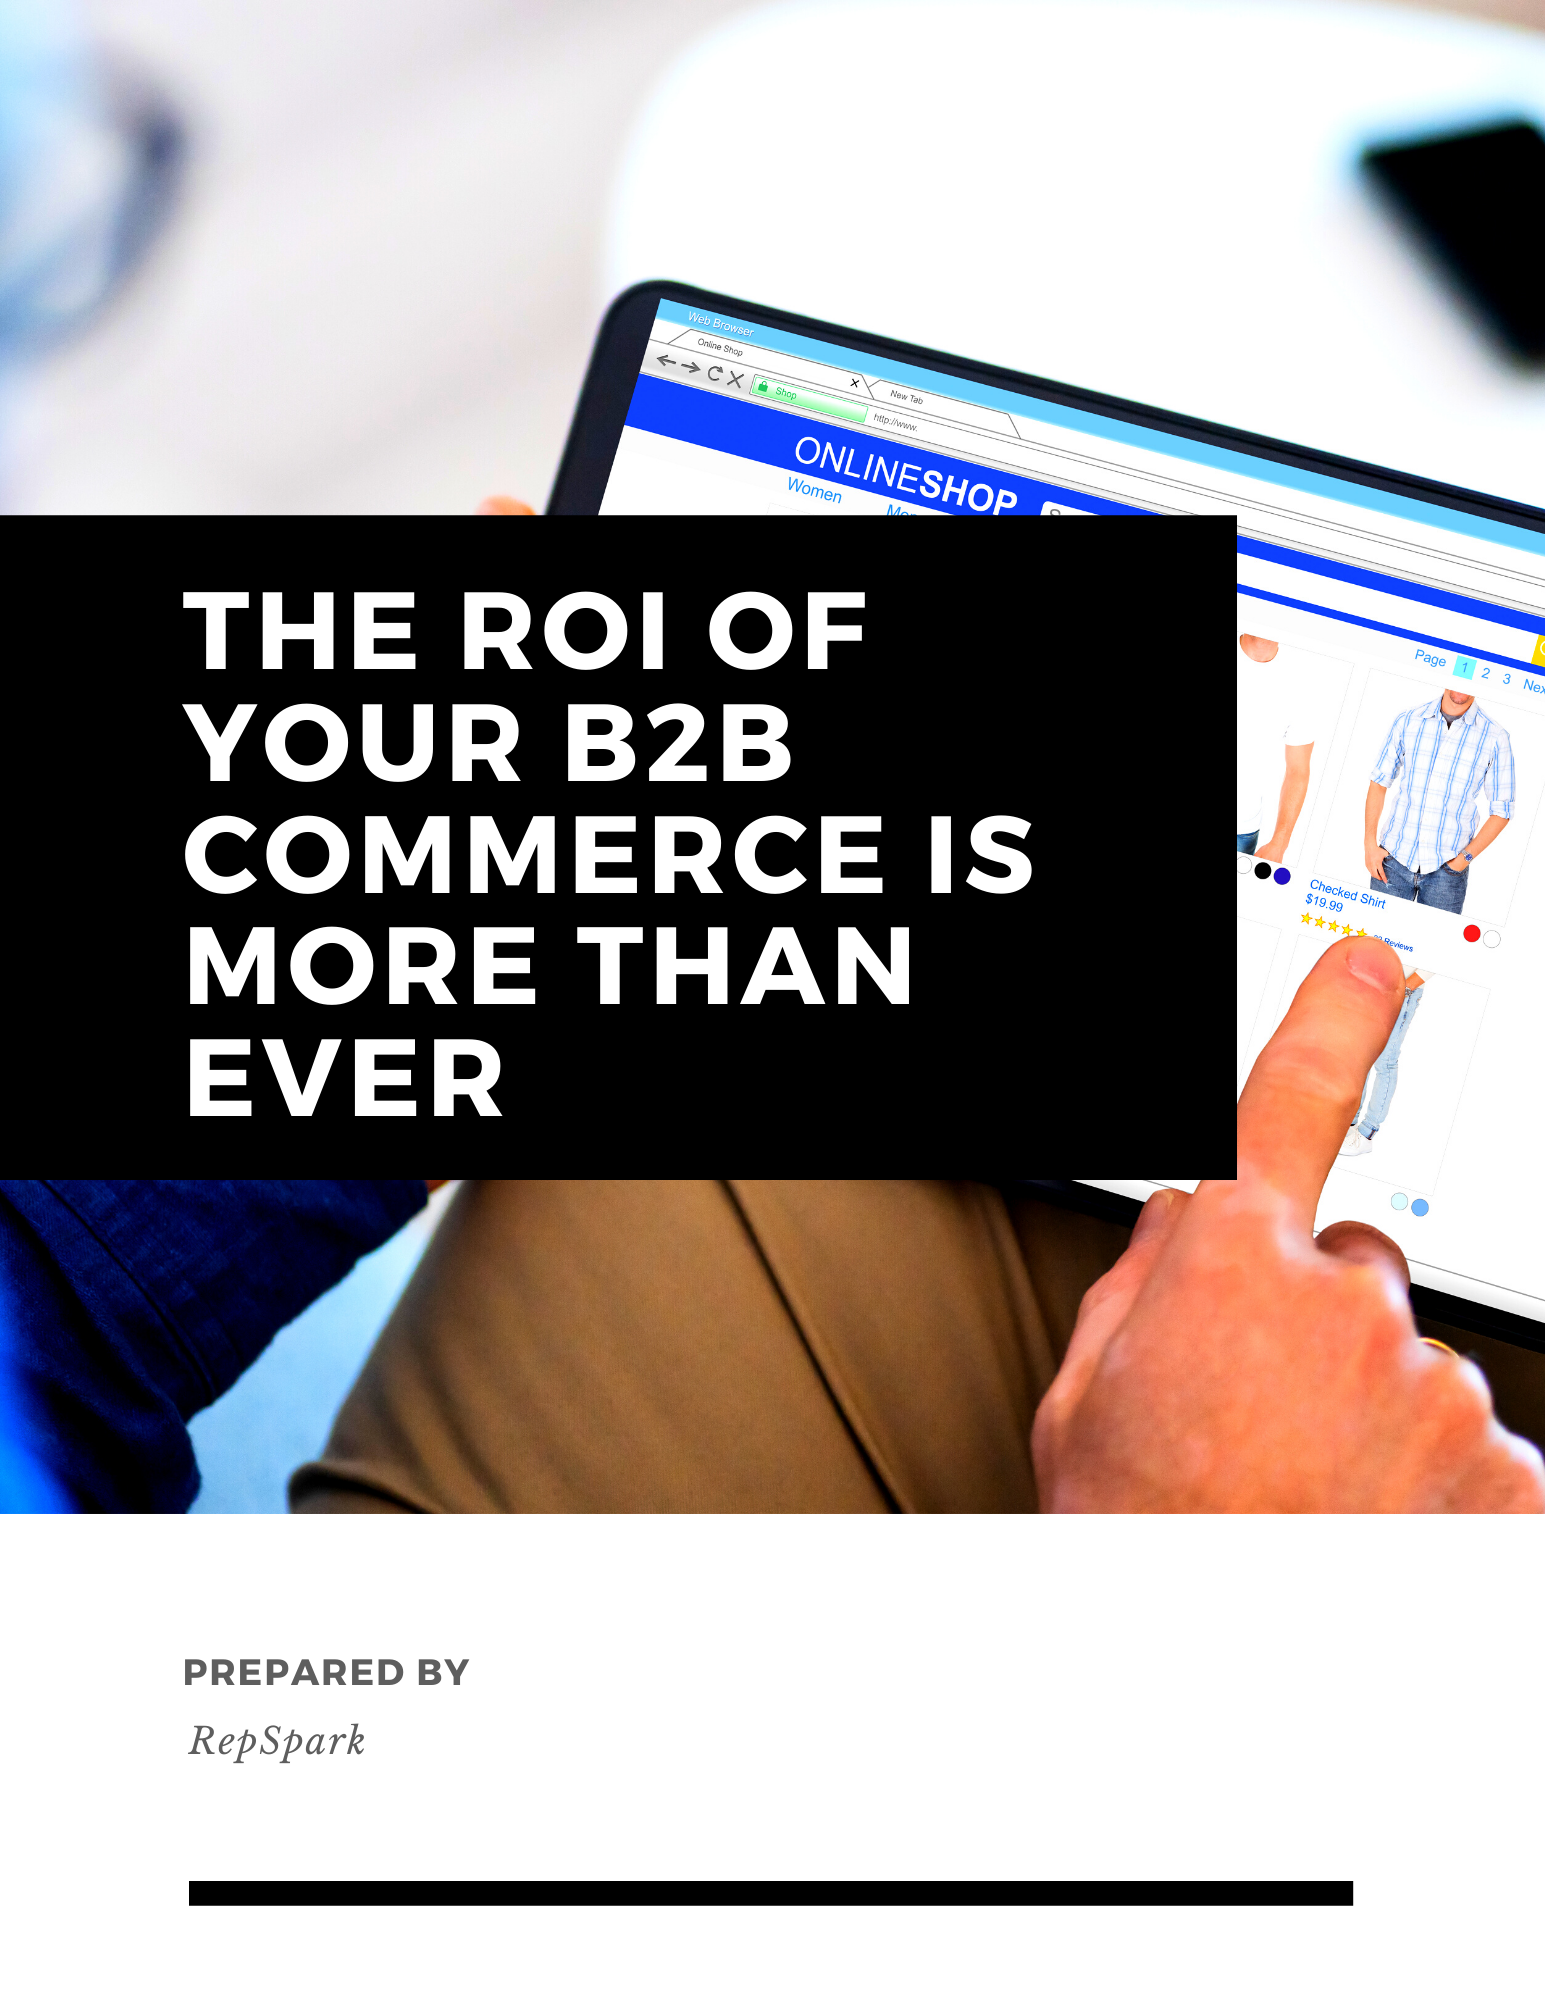 EL- The ROI of your B2B Commerce is more than ever